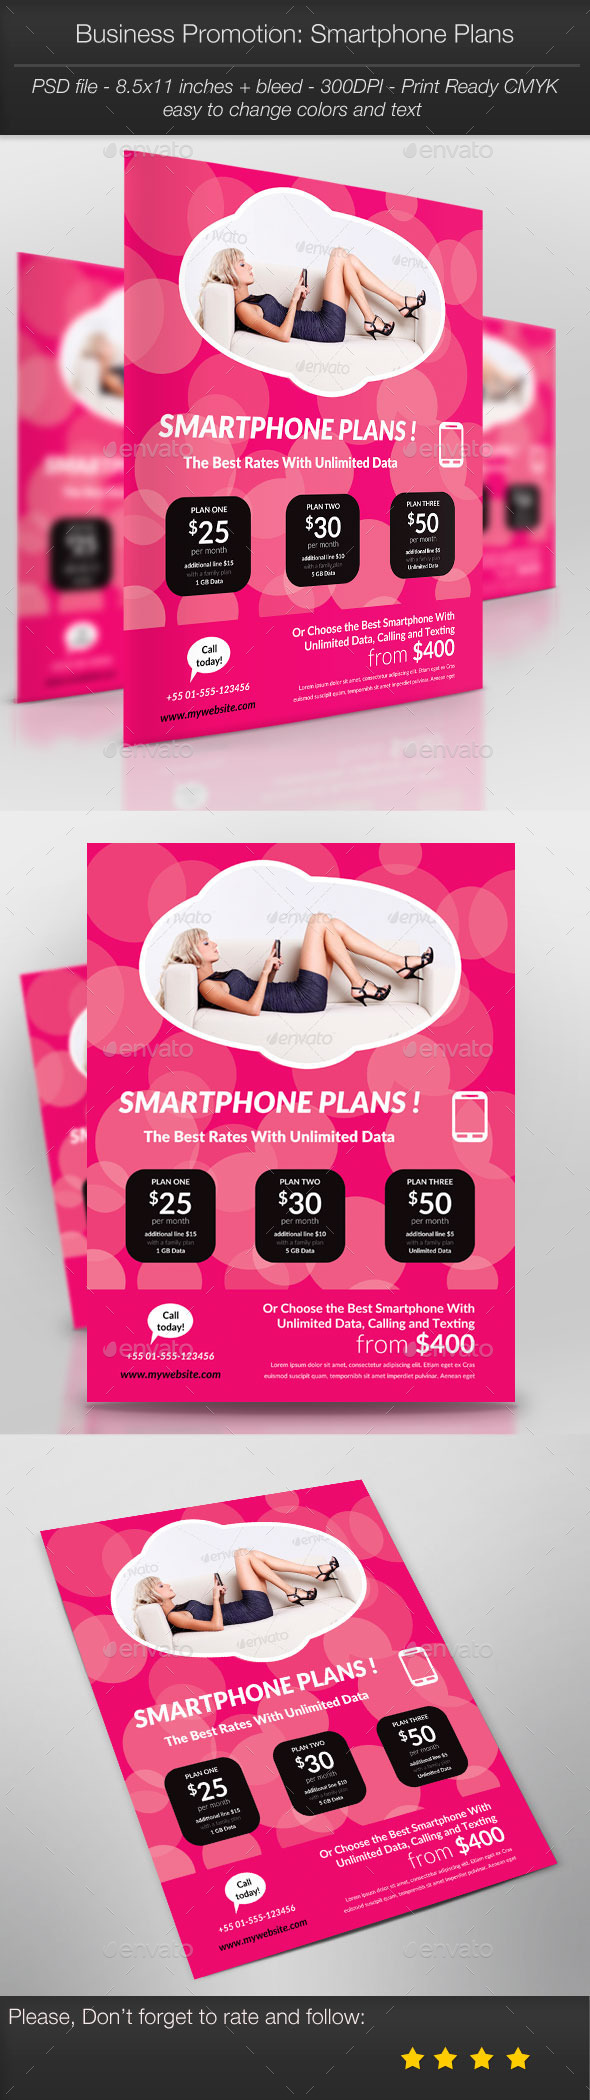 GraphicRiver Business Promotion Smartphone Plans 11085952